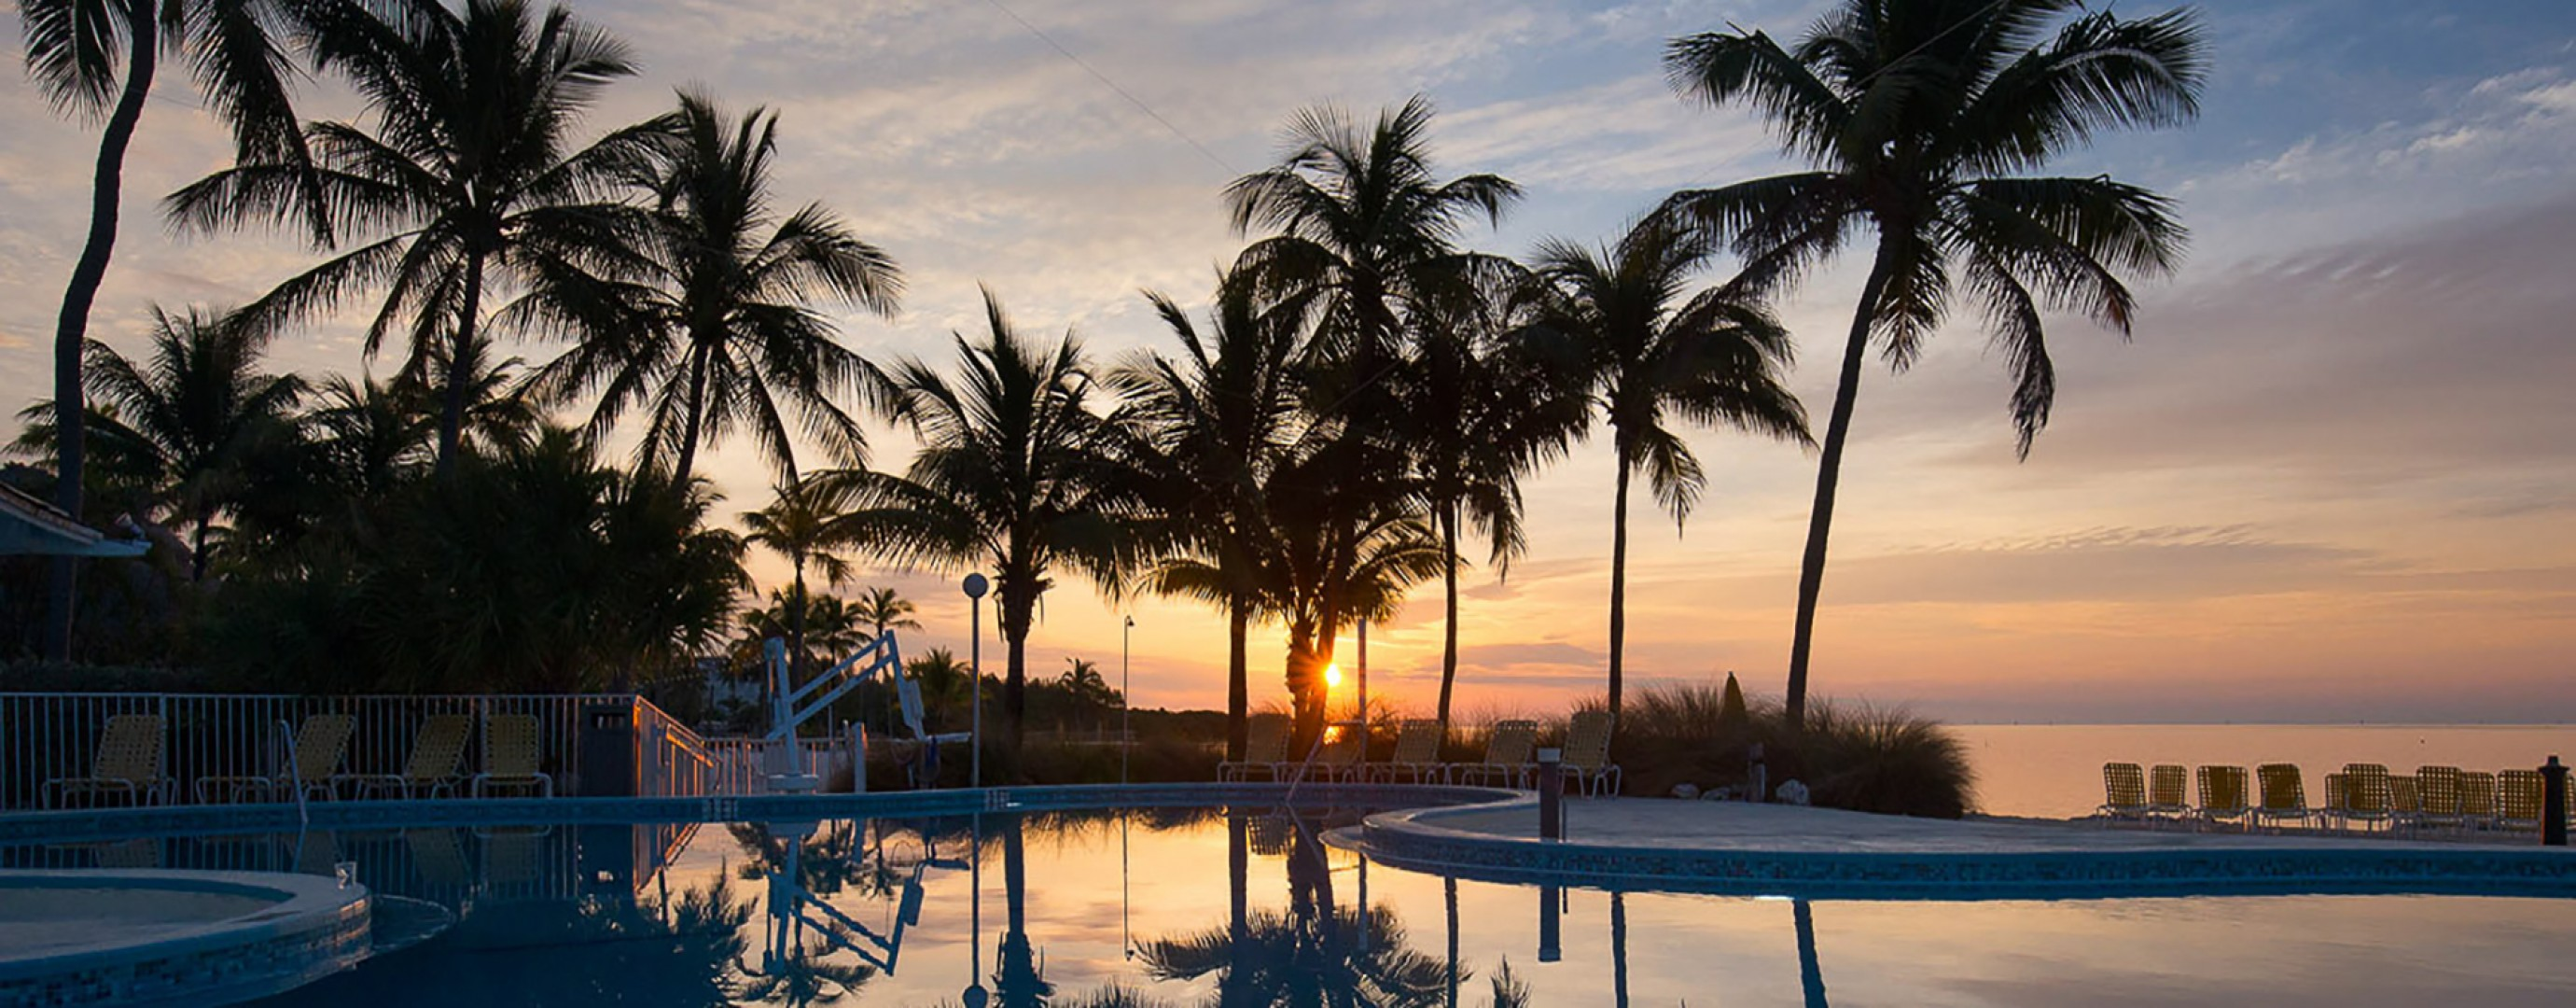 Sunset at the pool of Postcard Inn Beachfront Resort & Marina